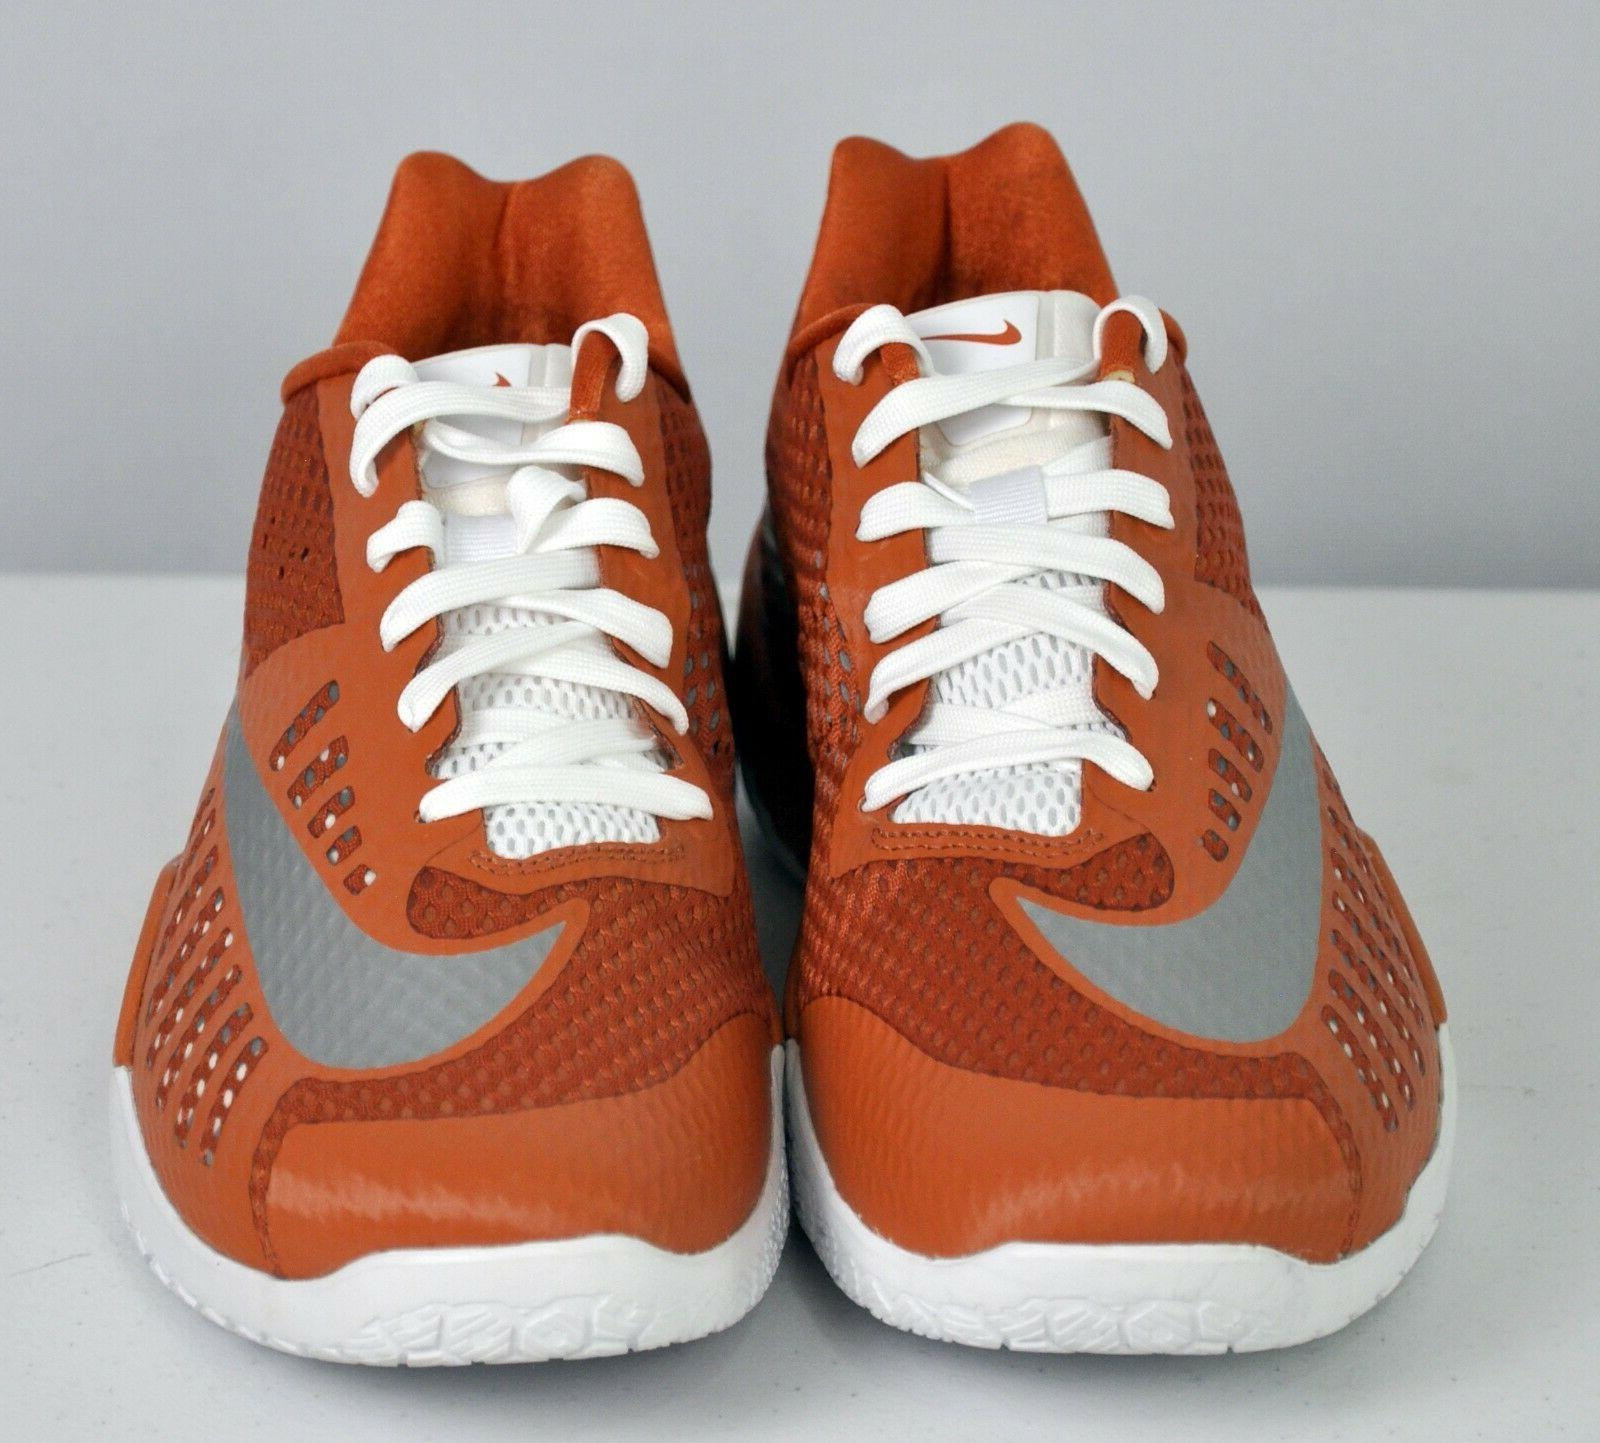 Nike Shoes Sneakers Size 11.5